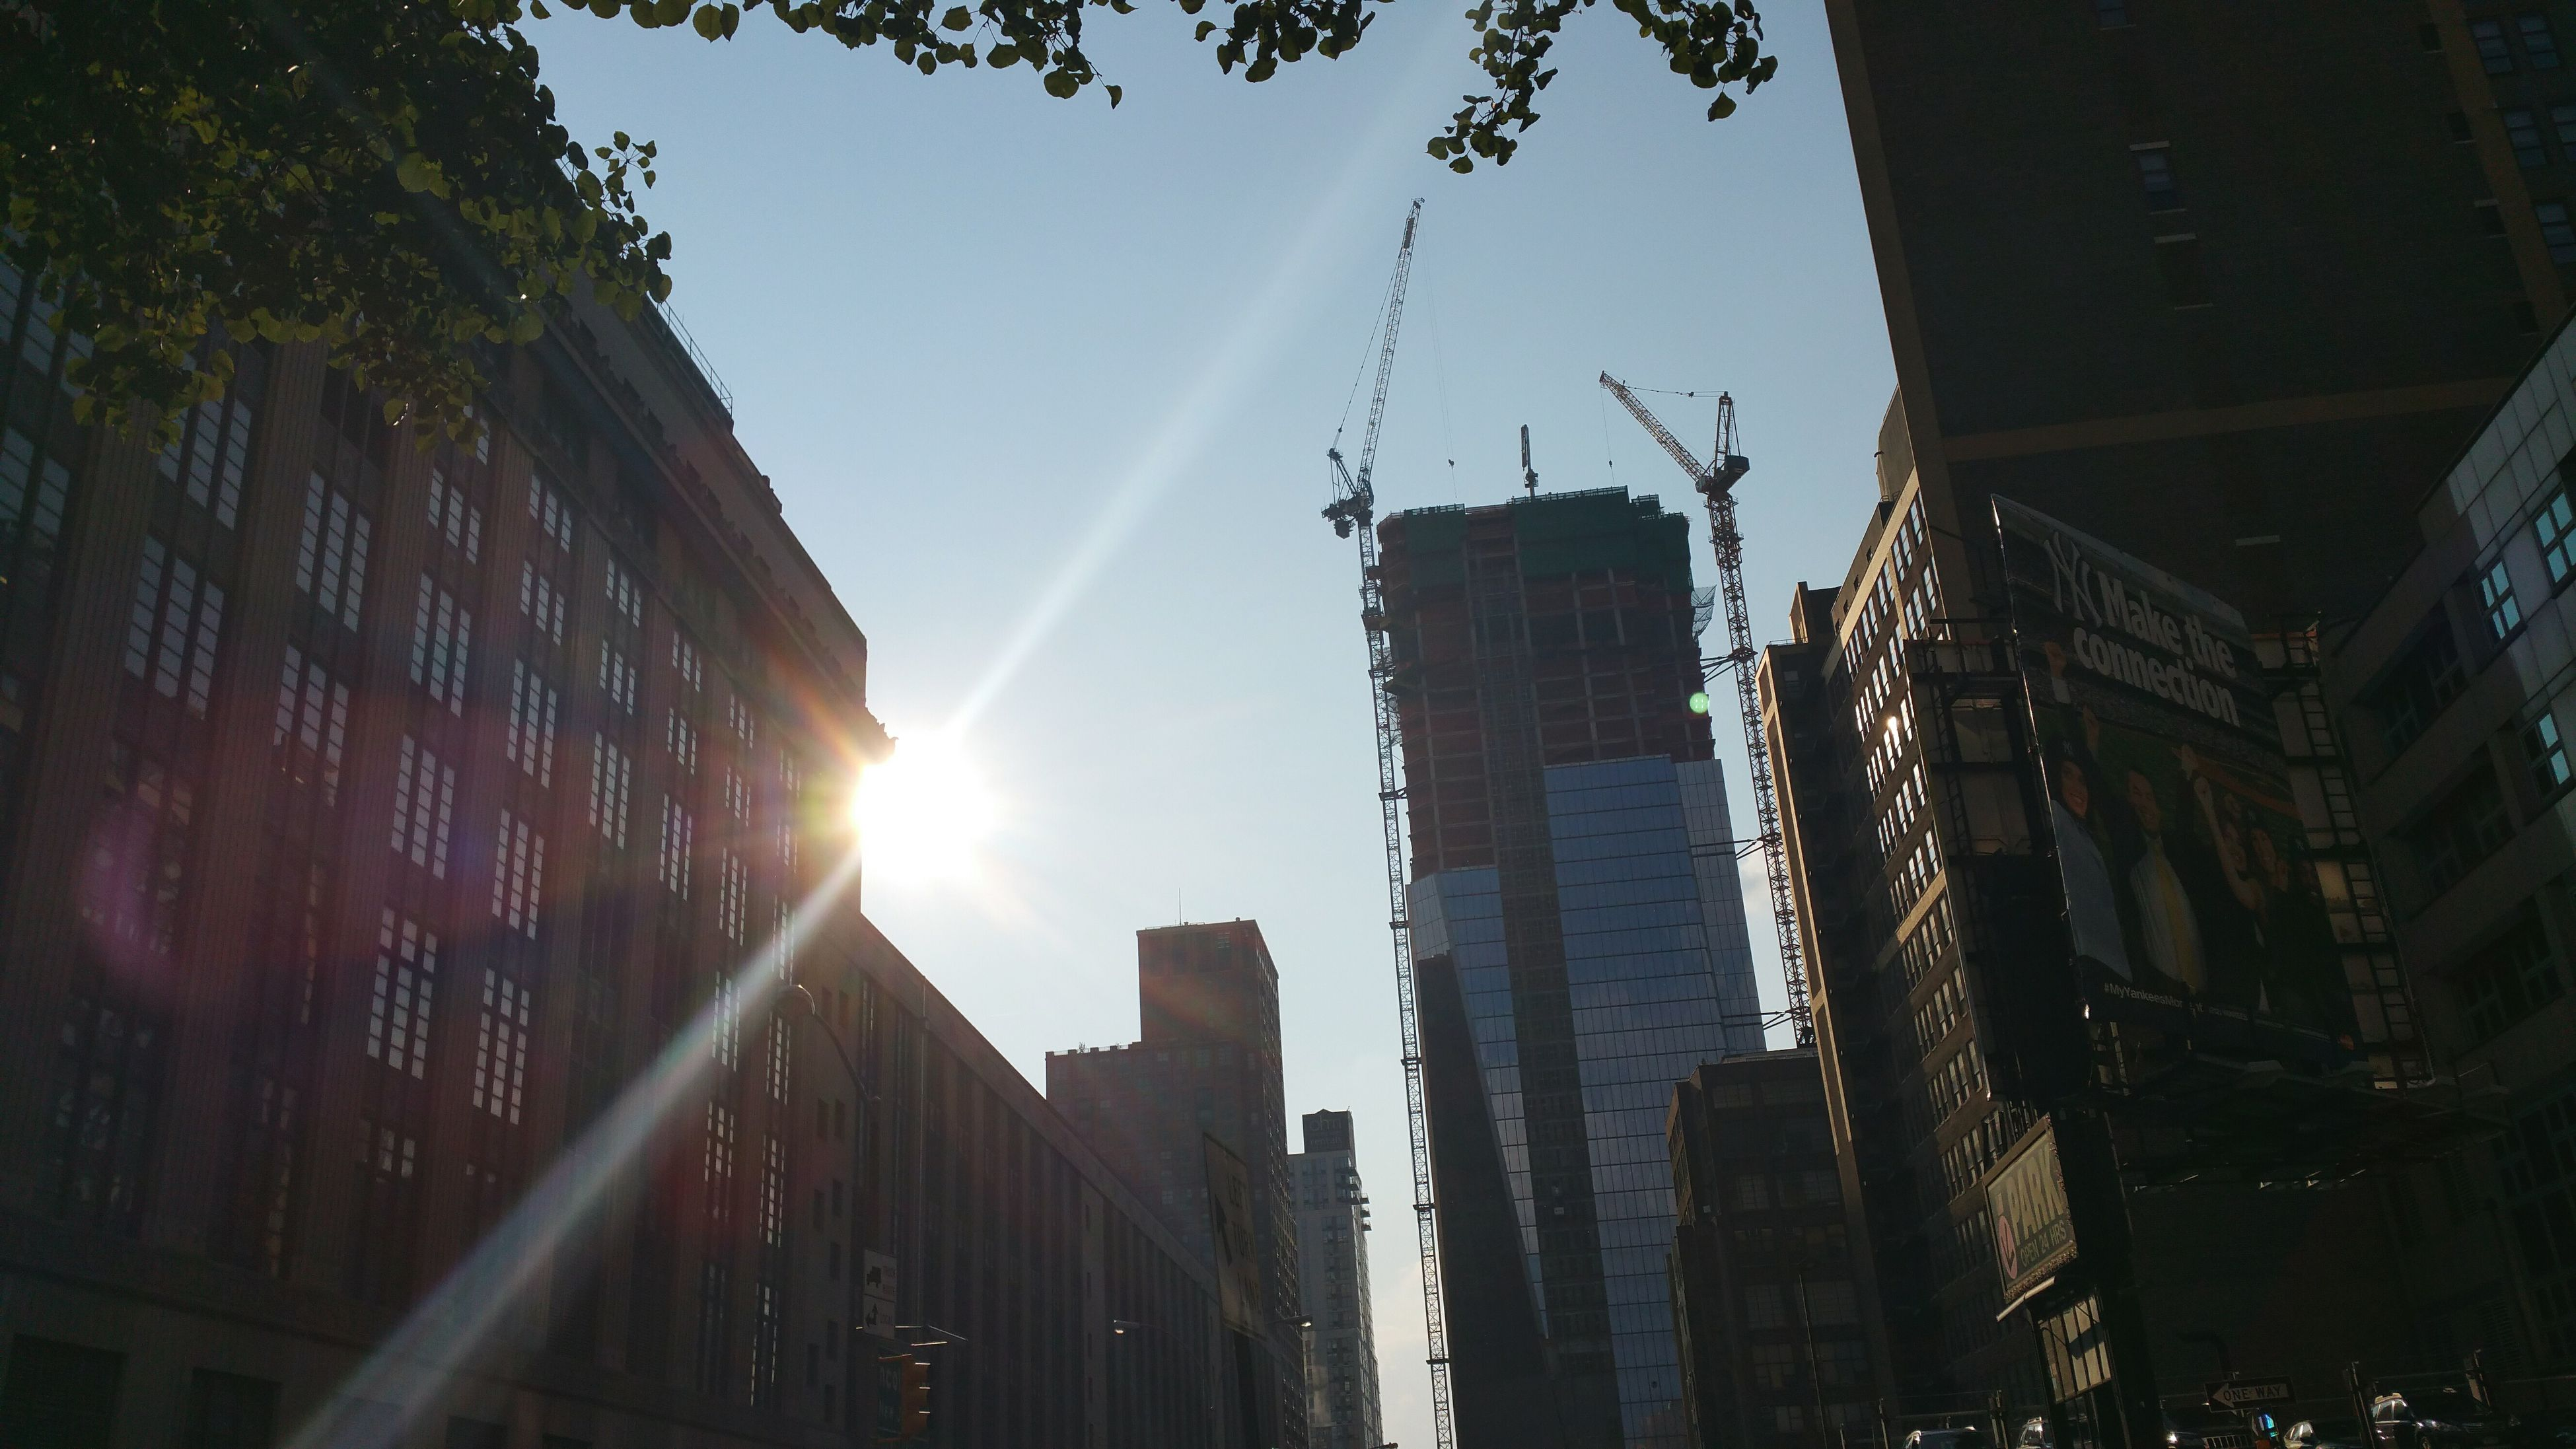 Somewhere in chelsea. Chelsea Newyork NYC Constuction Architecture Silhouette Midday Sunlight Midday Haze Sunpokingout